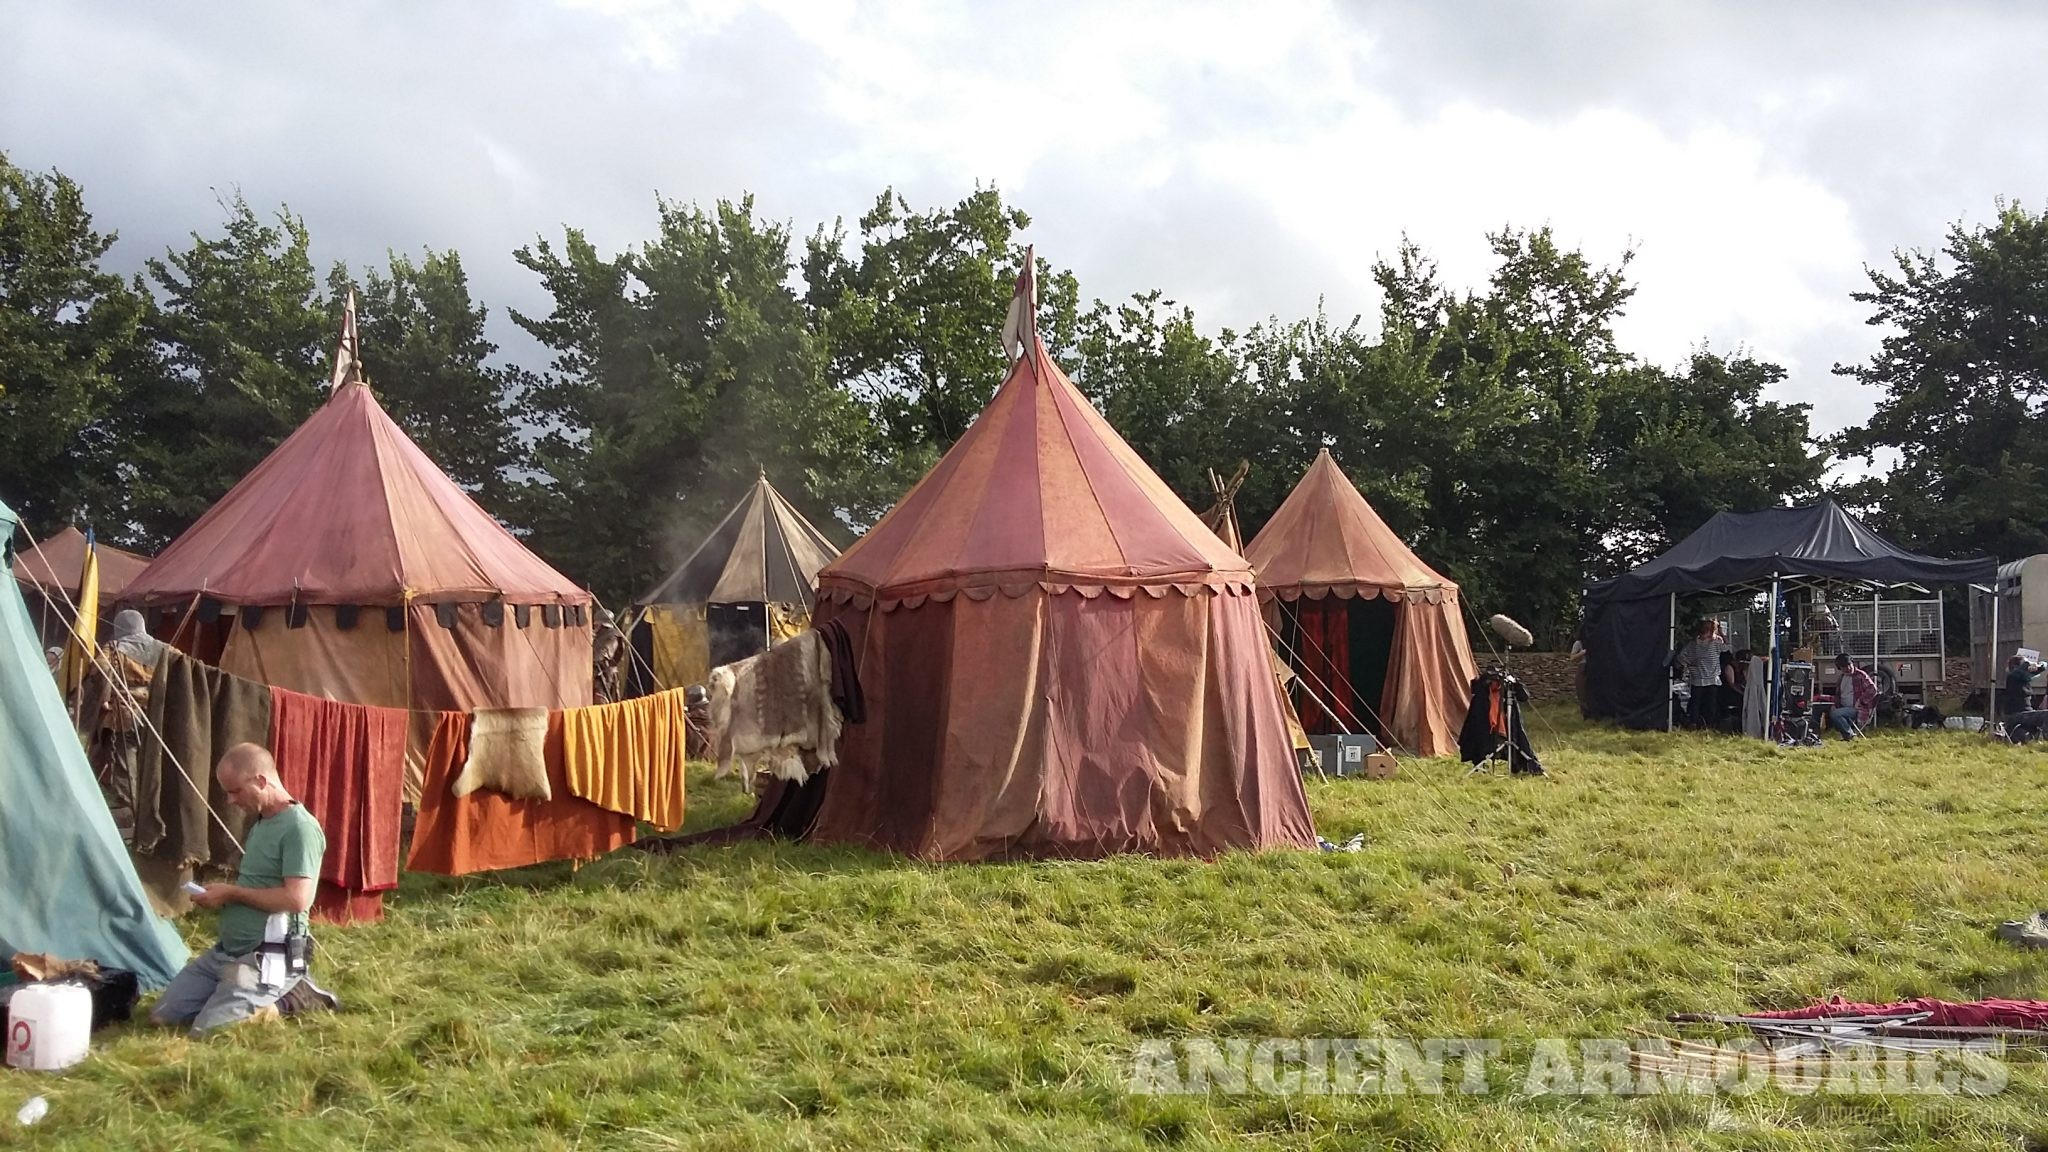 Pavilion Tents & Medieval Tent u0026 Marquee Hire